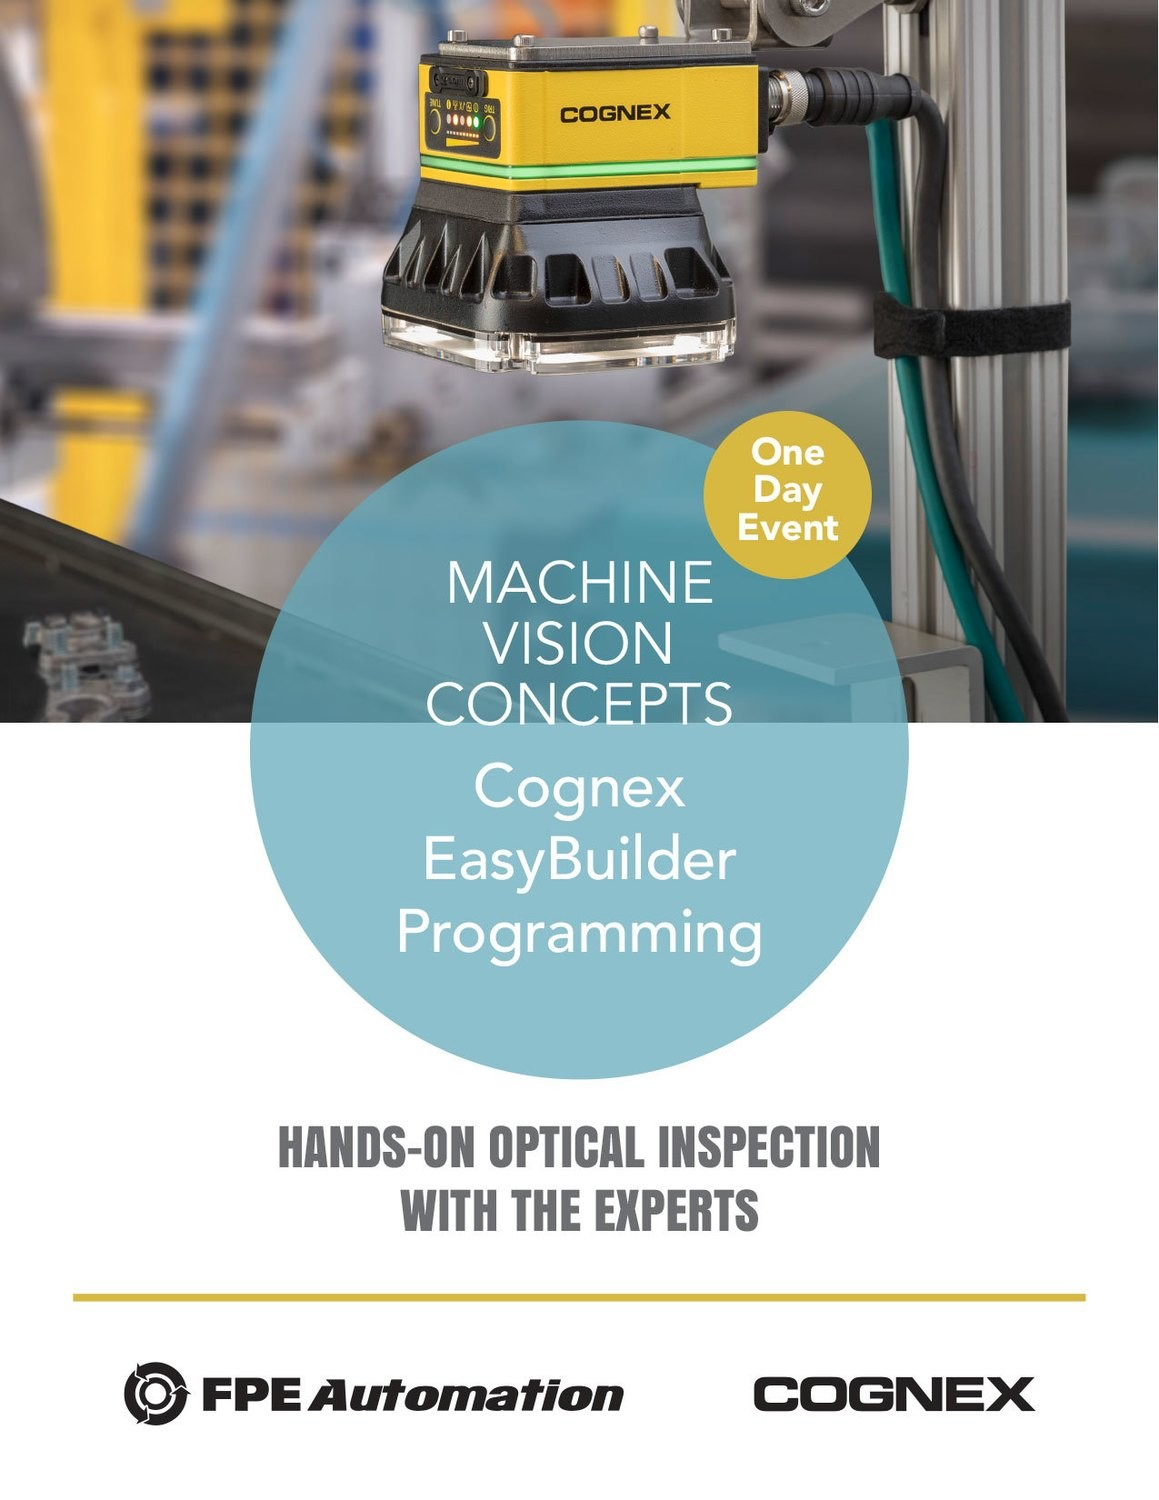 One Day Event: Machine Vision Concepts and Cognex